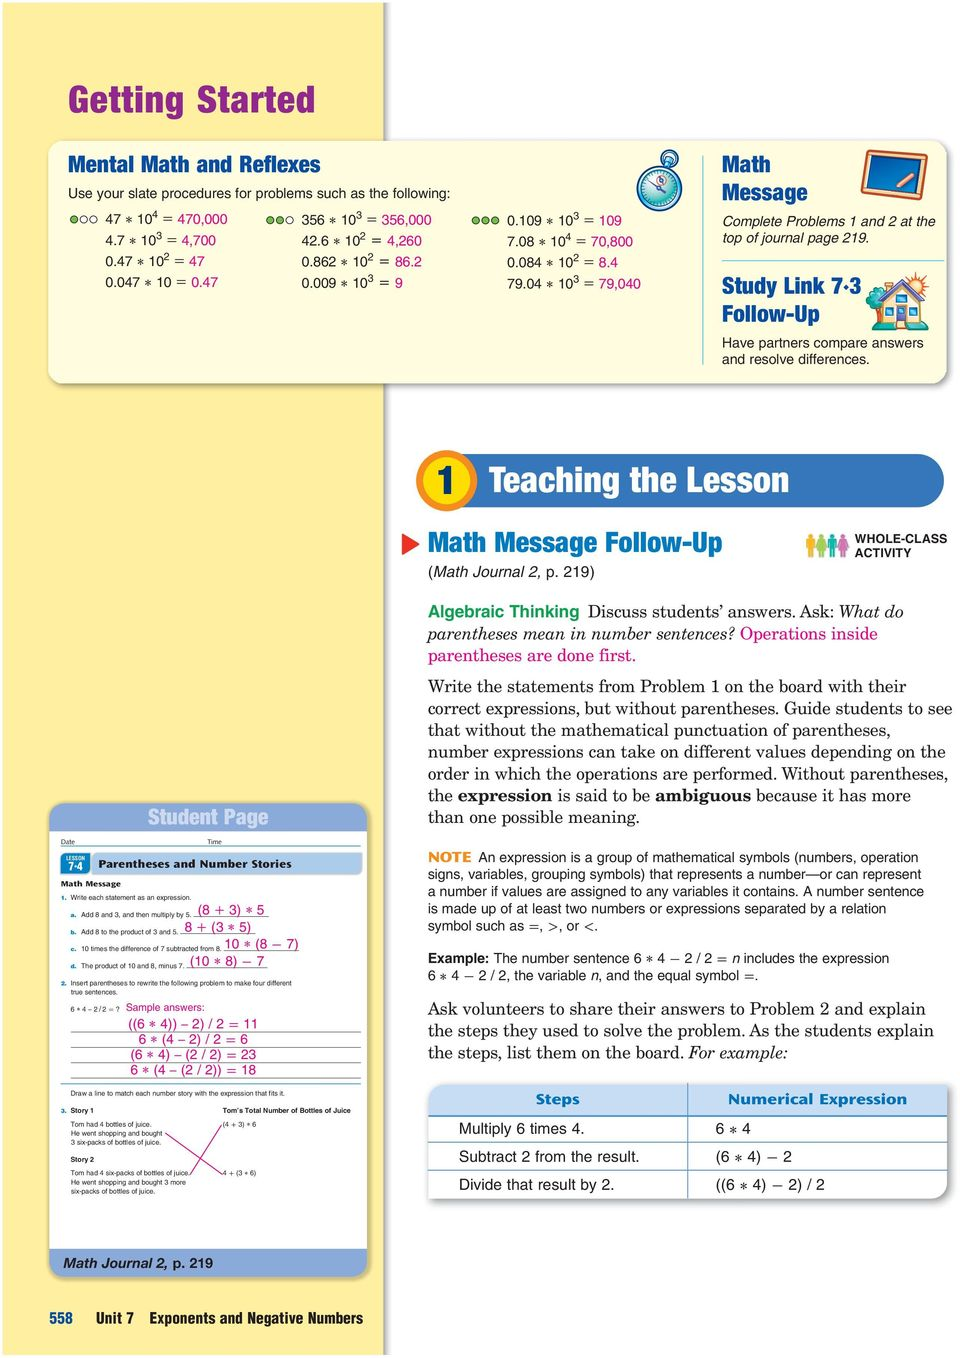 Study Link 7 3 Follow-Up Have partners compare answers and resolve differences. 1 Teaching the Lesson Math Message Follow-Up (Math Journal, p. 19) WHOLE-CLASS Date 7 4 Math Message 1.